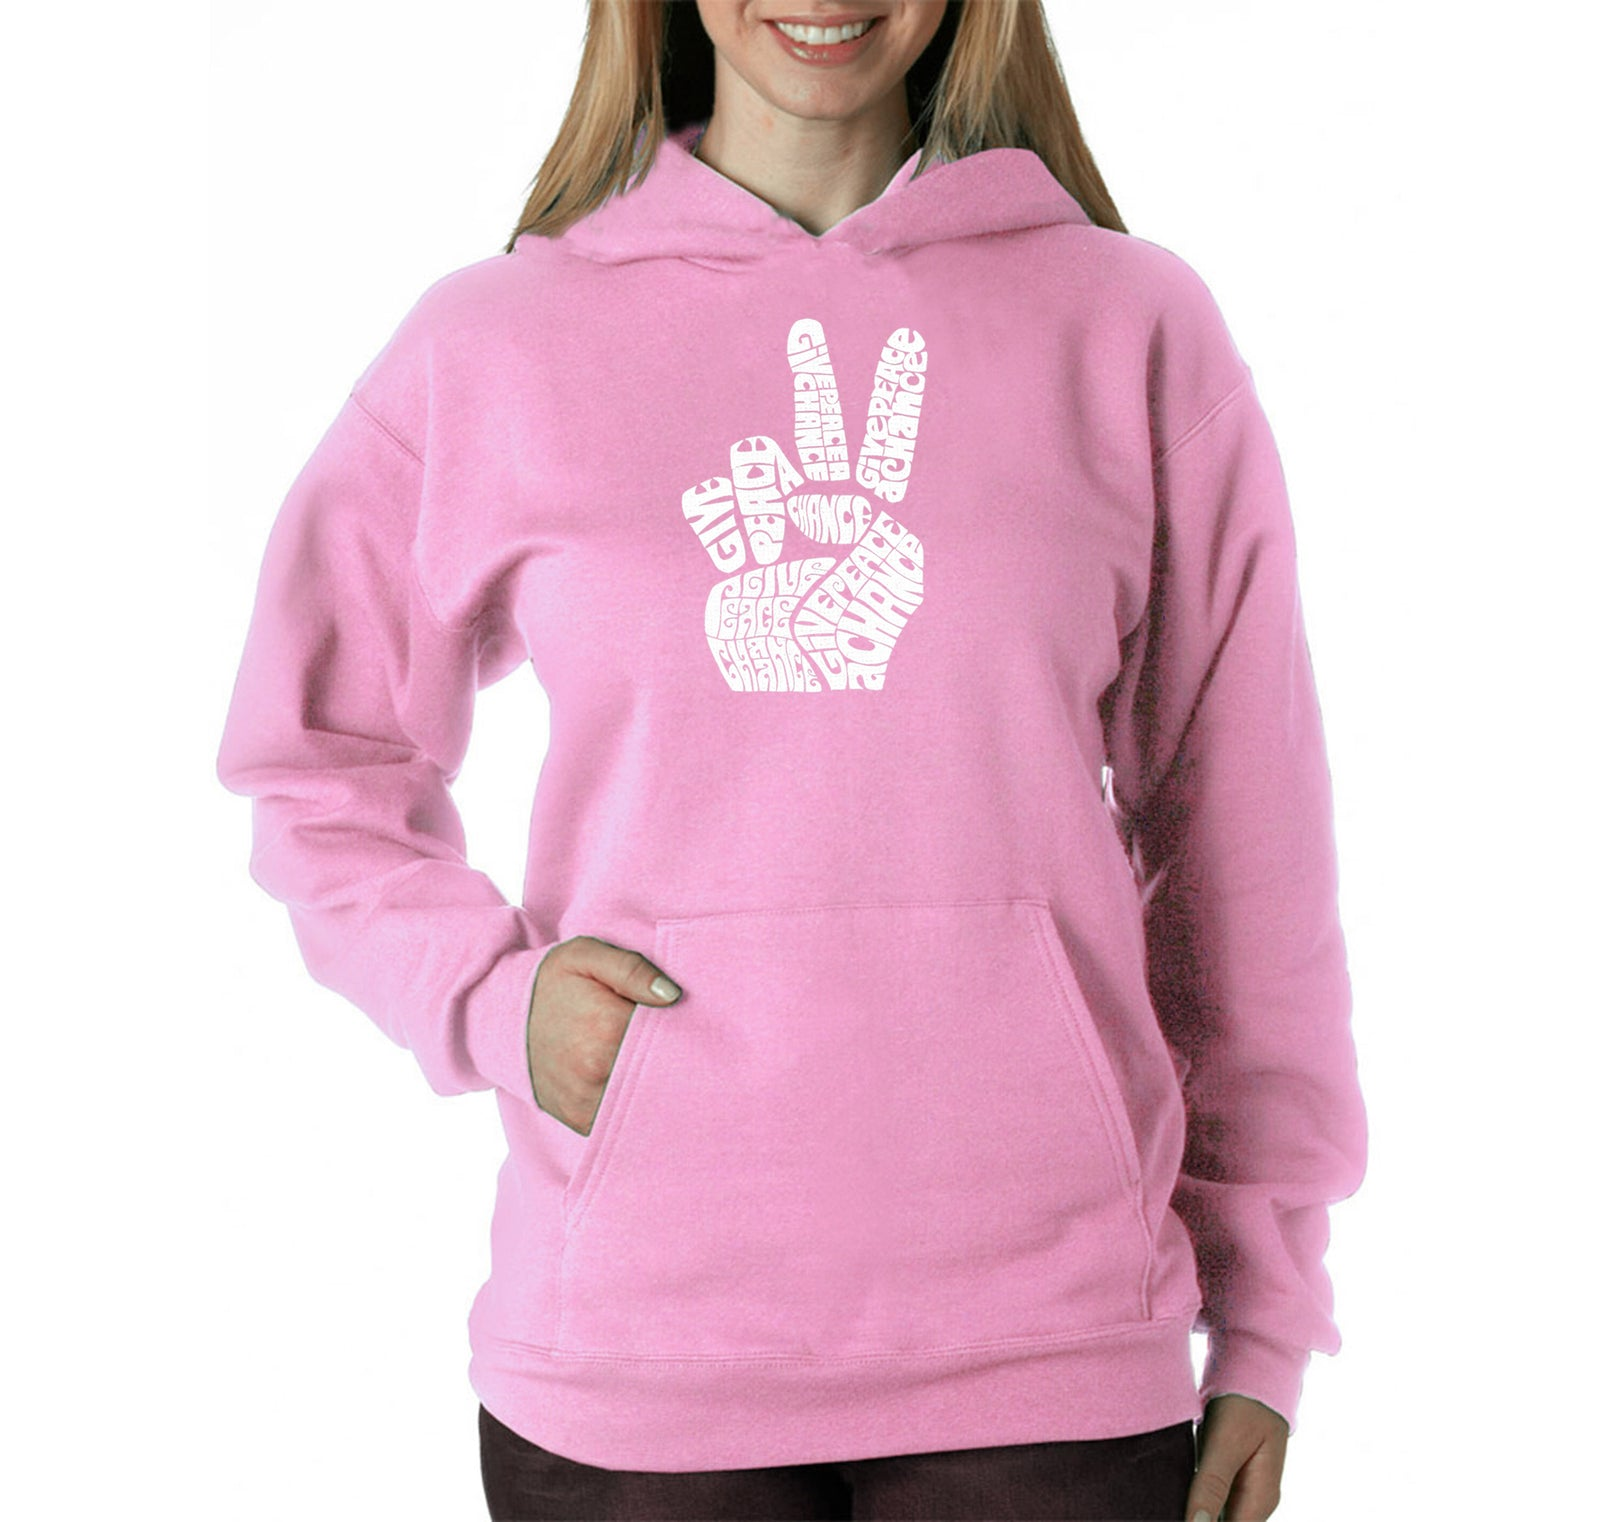 Women's Hooded Sweatshirt -PEACE FINGERS